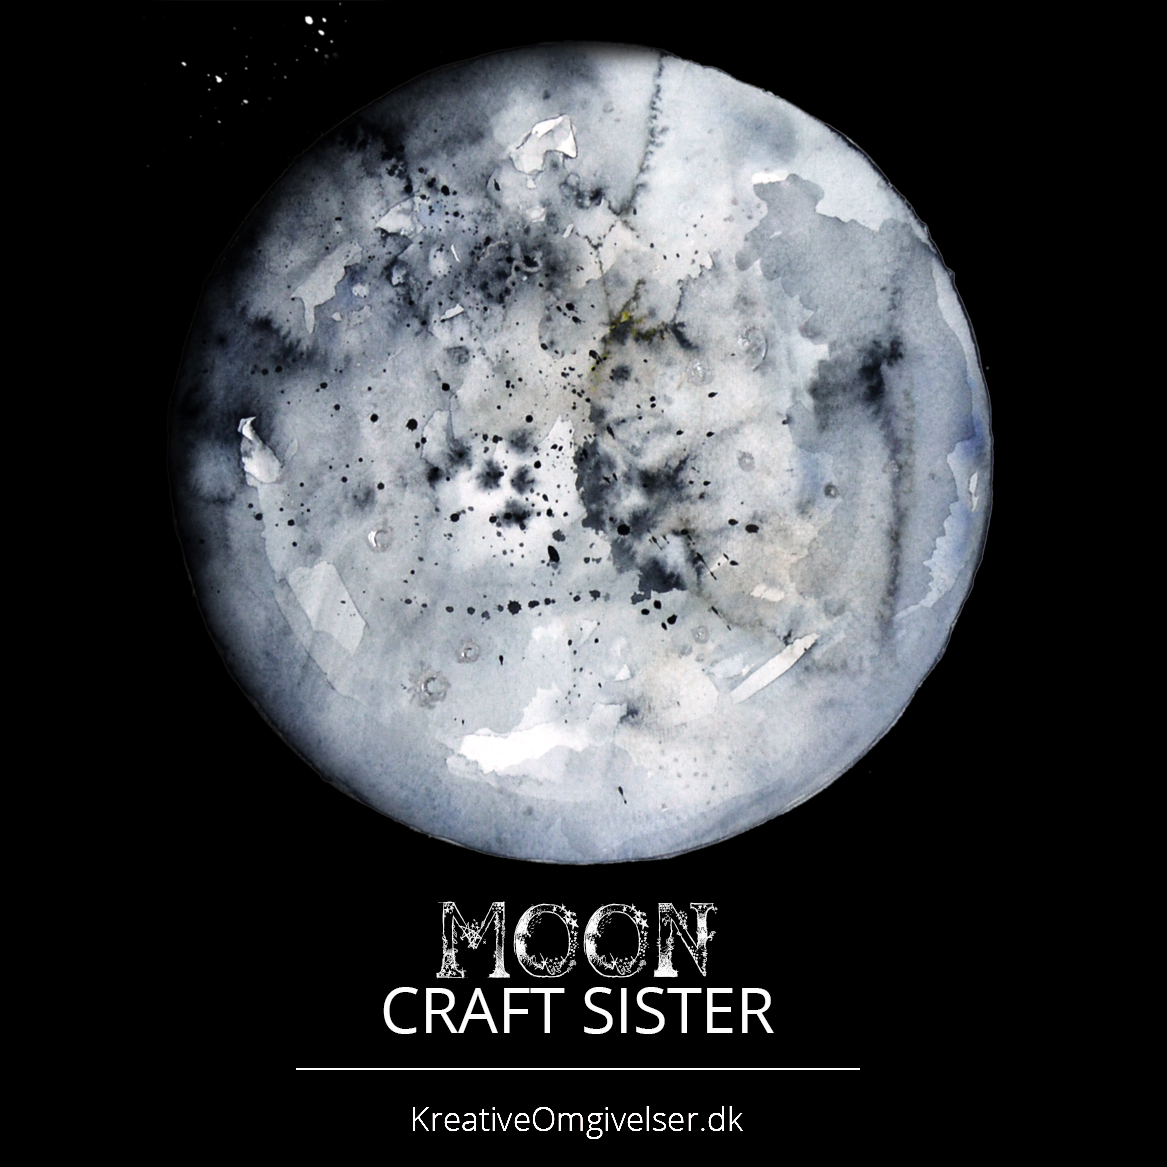 mooncraftsister